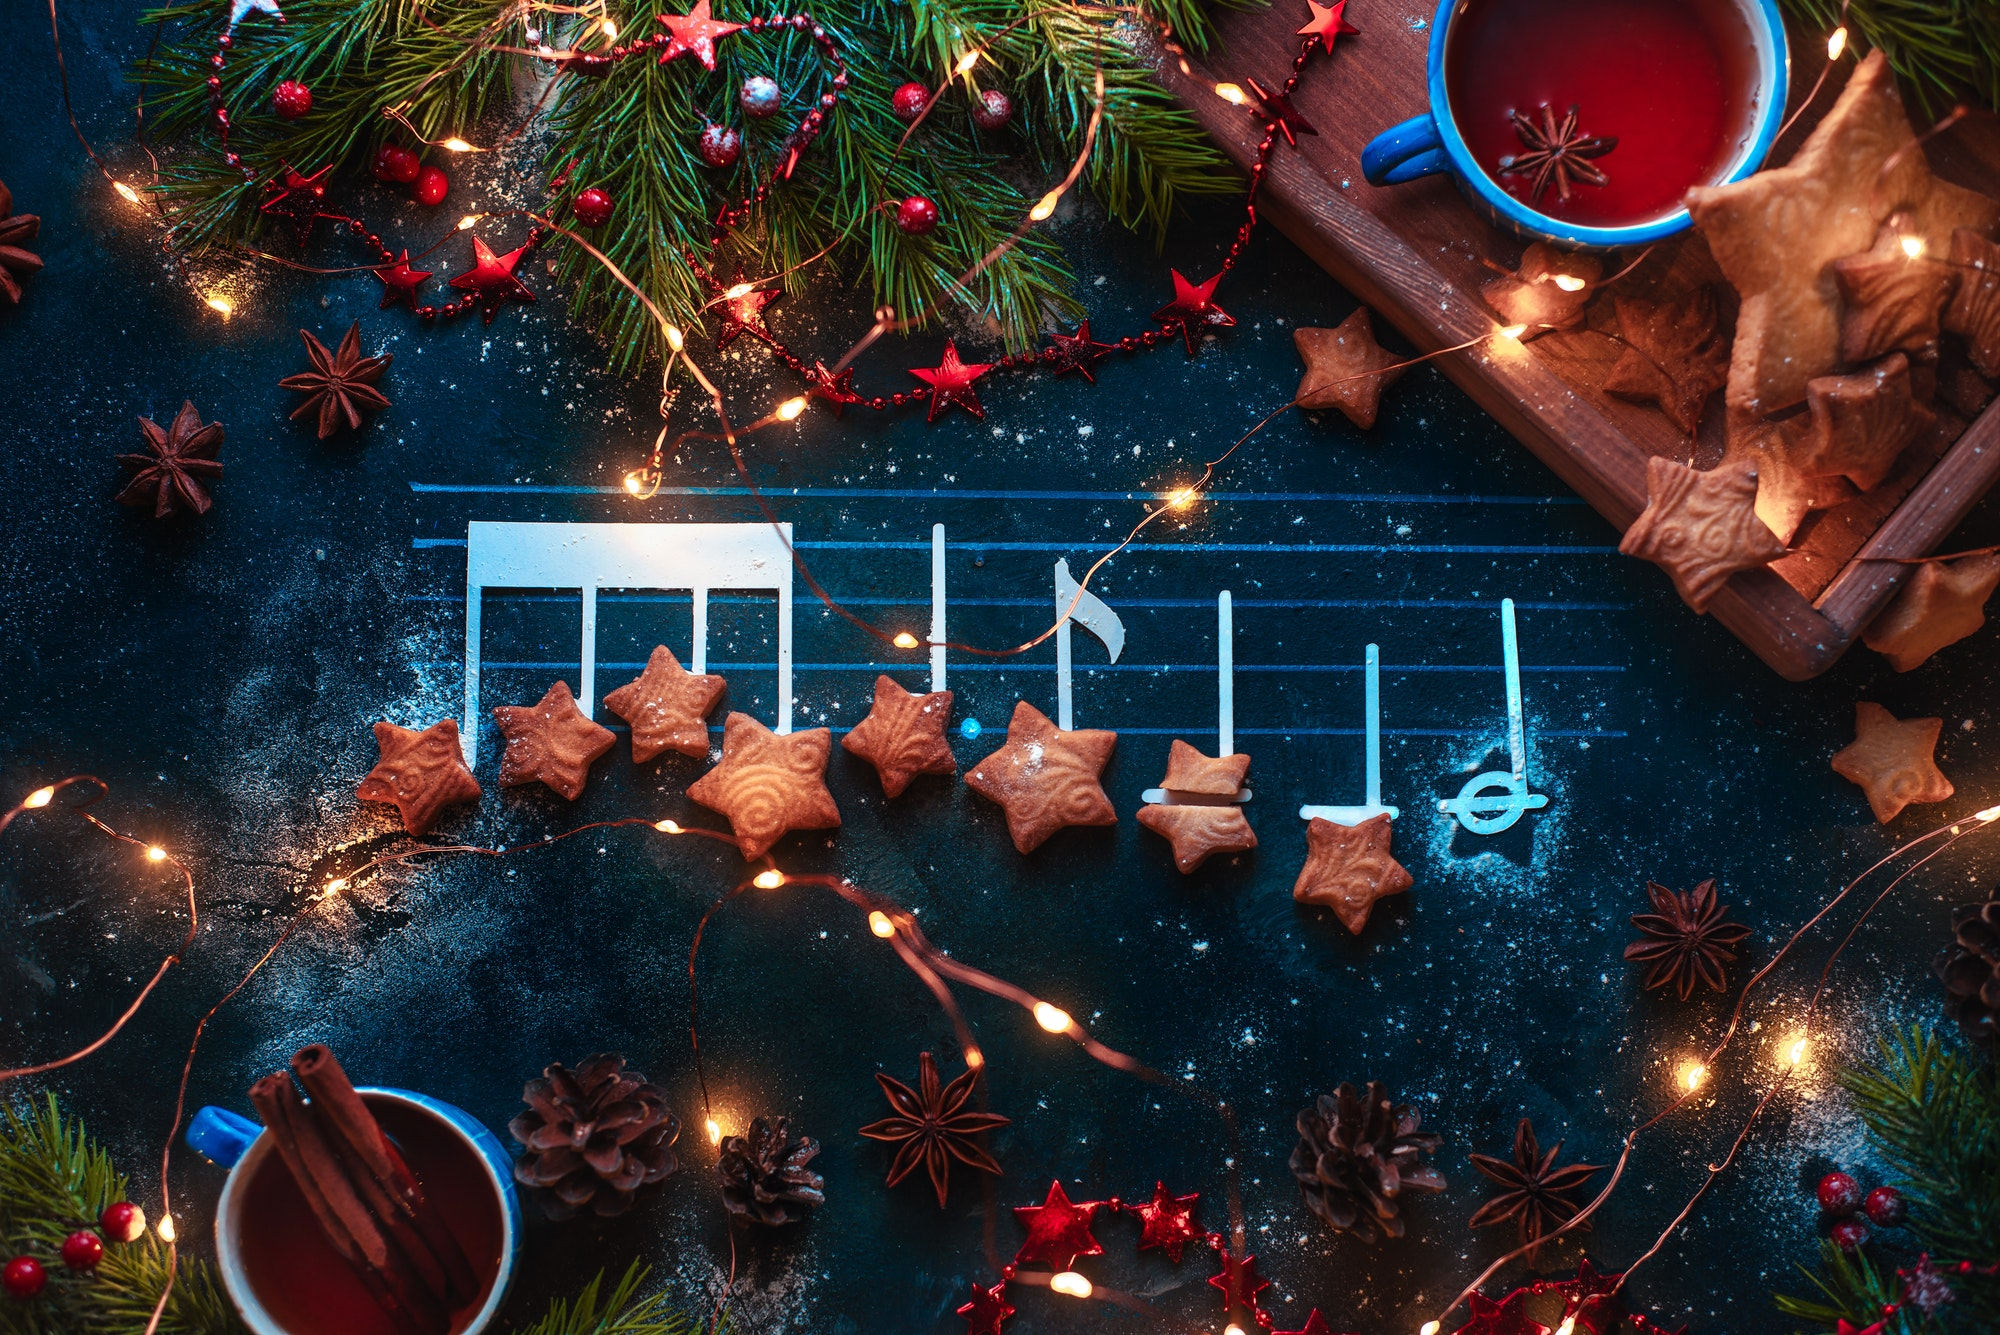 Christmas melody notes flat lay with star-shaped cookies, fir tree branches, wooden tray, anise